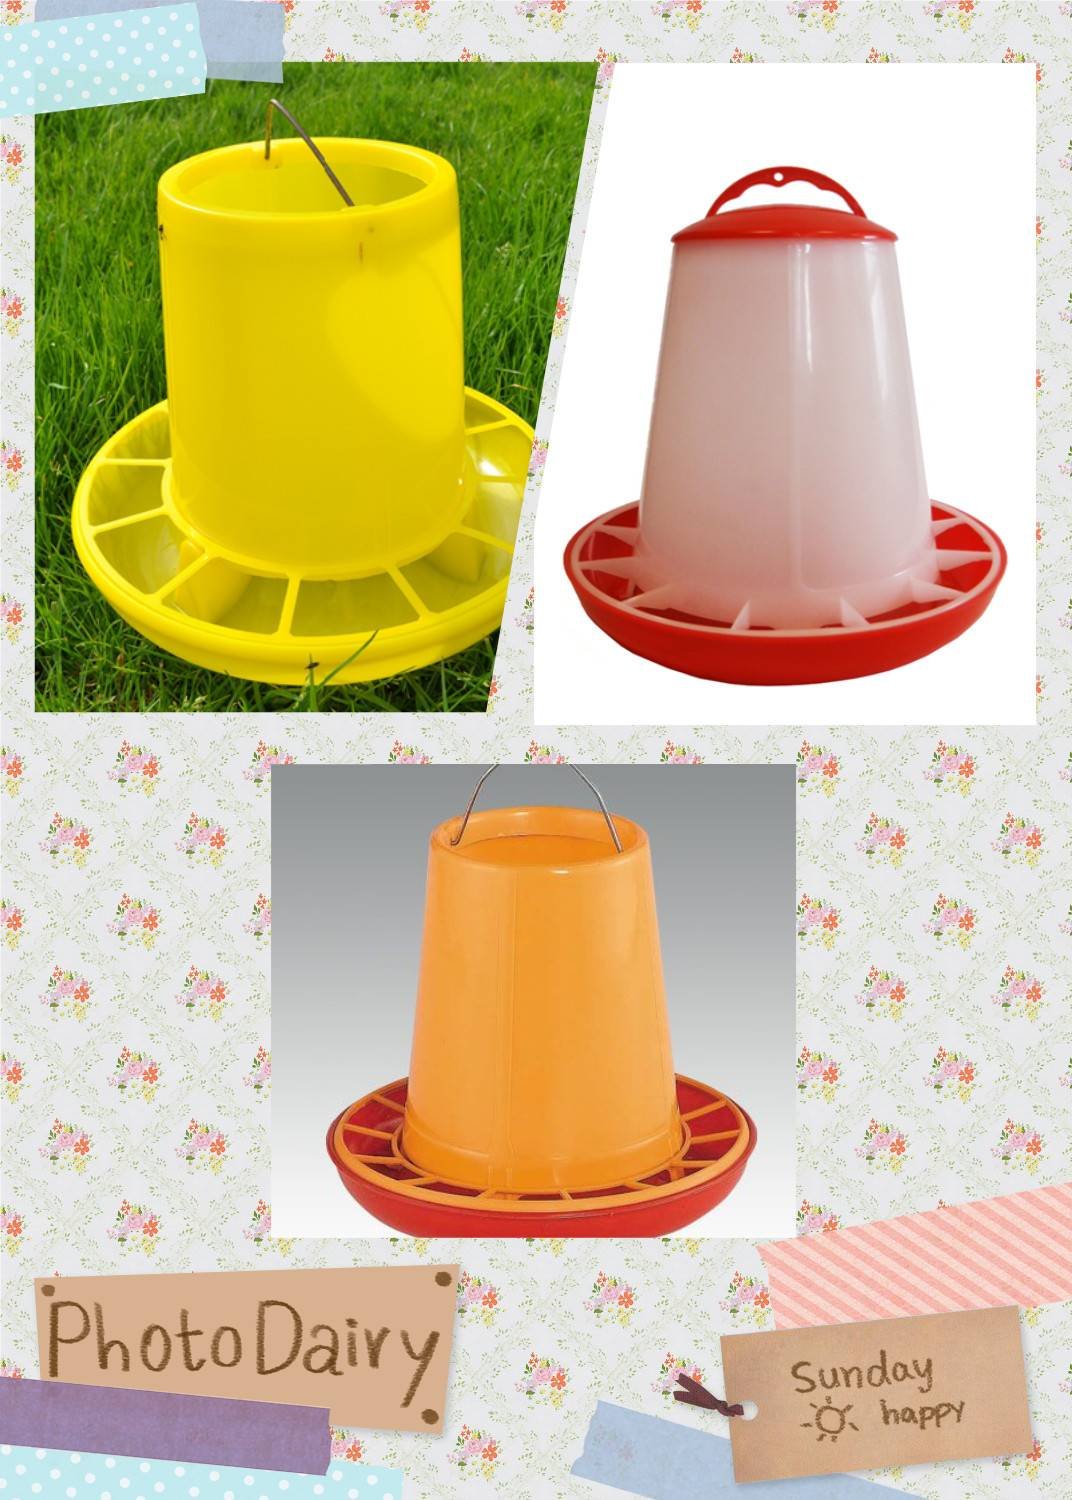 8kg best selling and high quality plastic poultry feeders for chicken